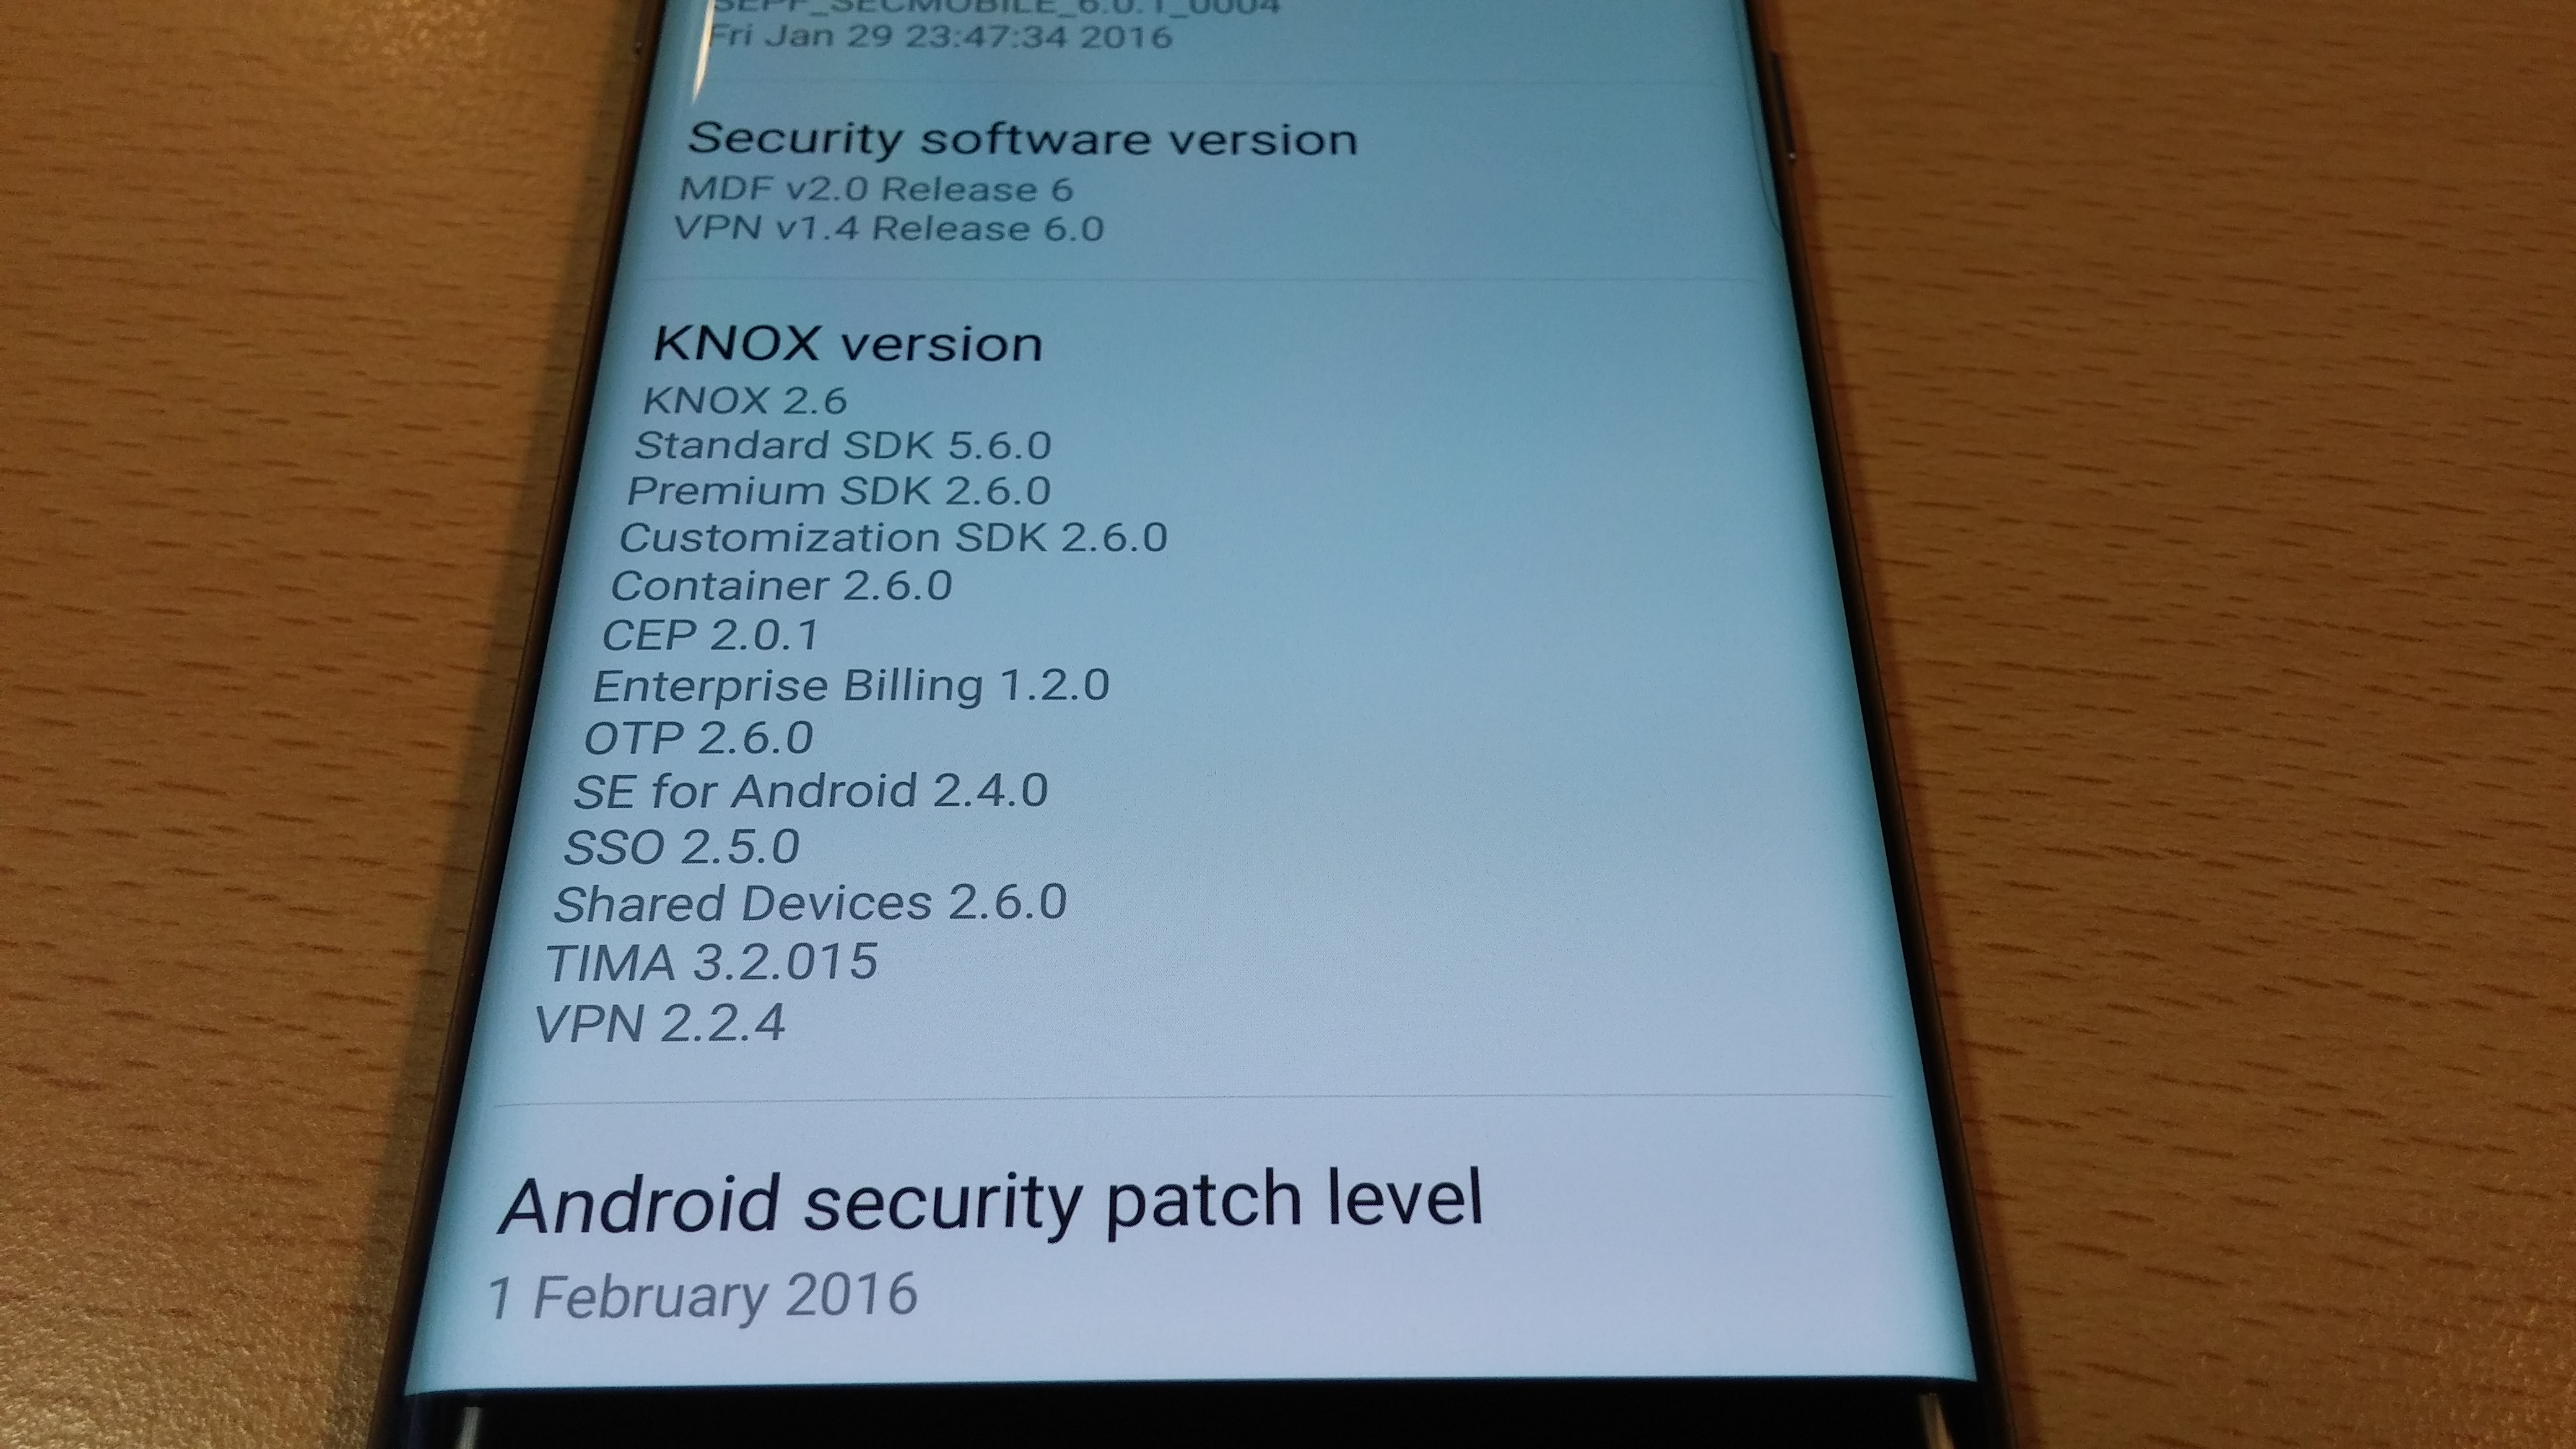 March 1 2016 Security Patch for Android devices said to fix third